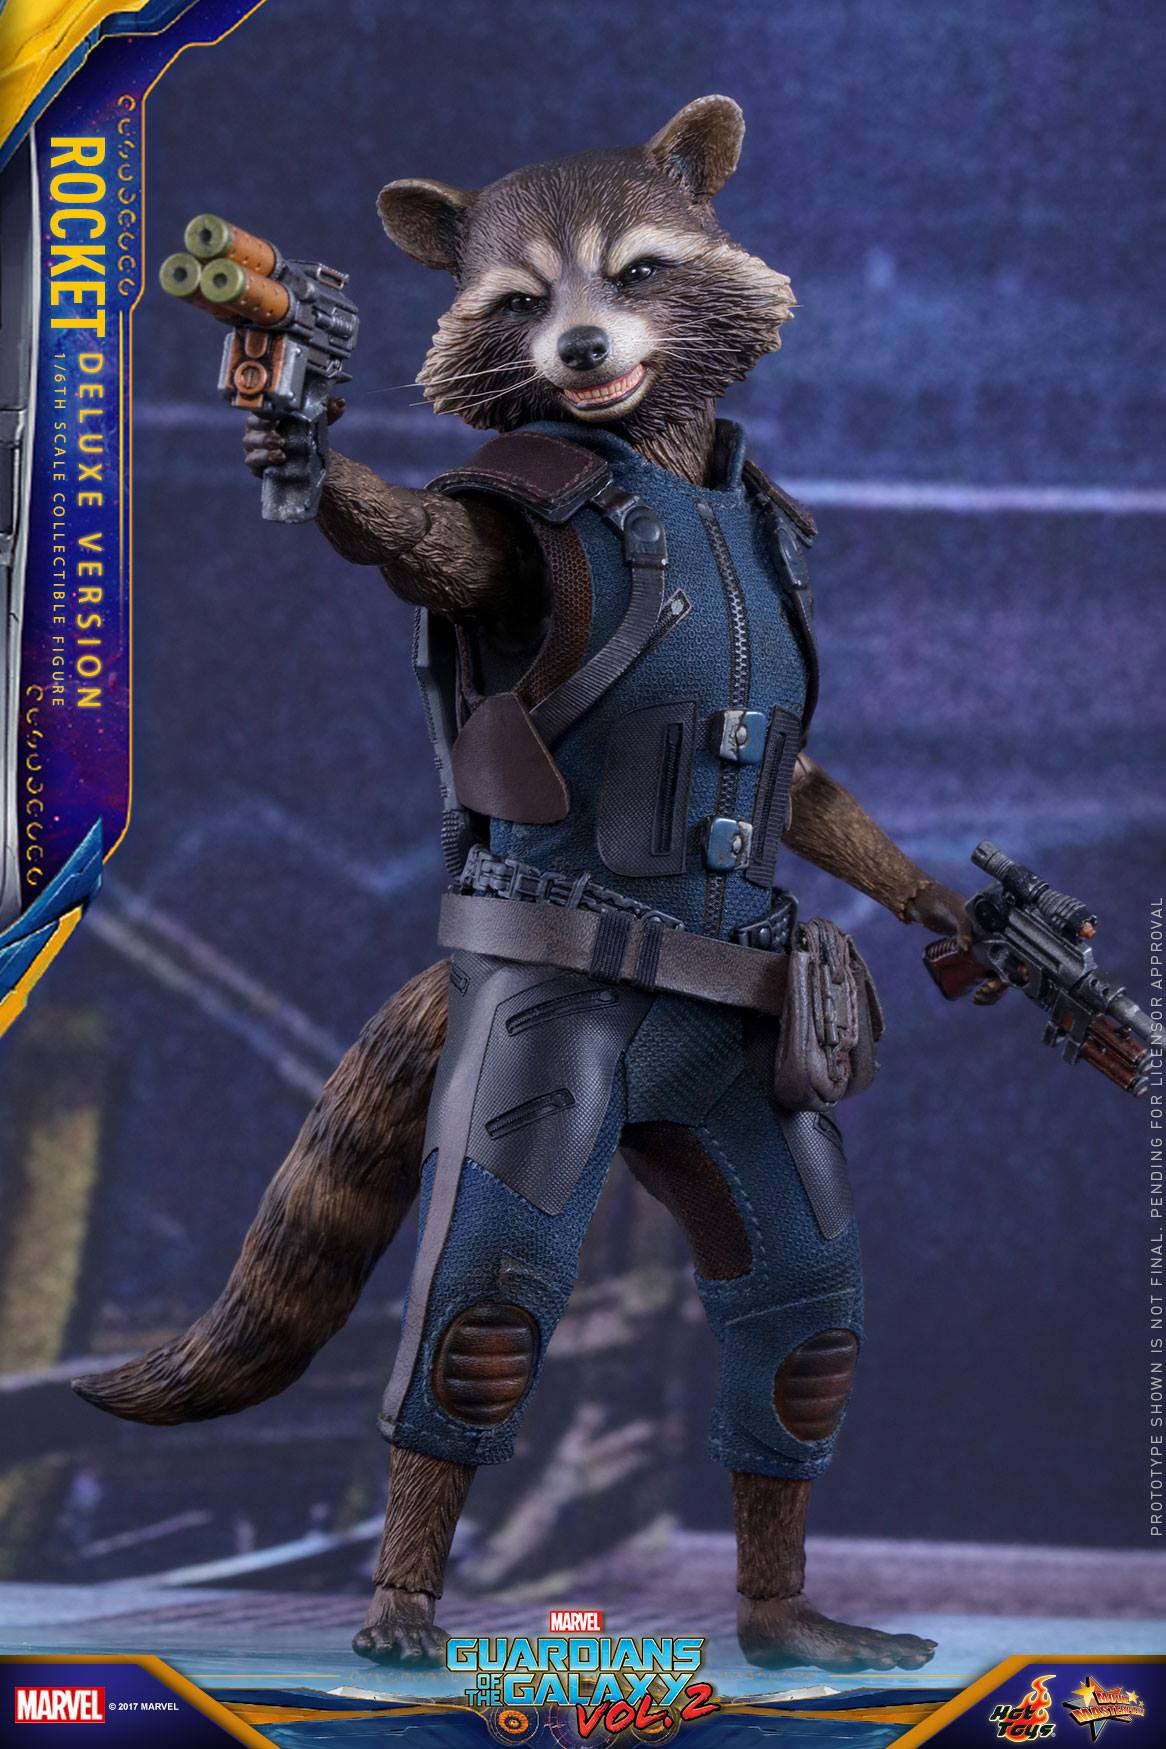 Hot Toys Guardians of the Galaxy Vol. 2 Rocket Raccoon ...